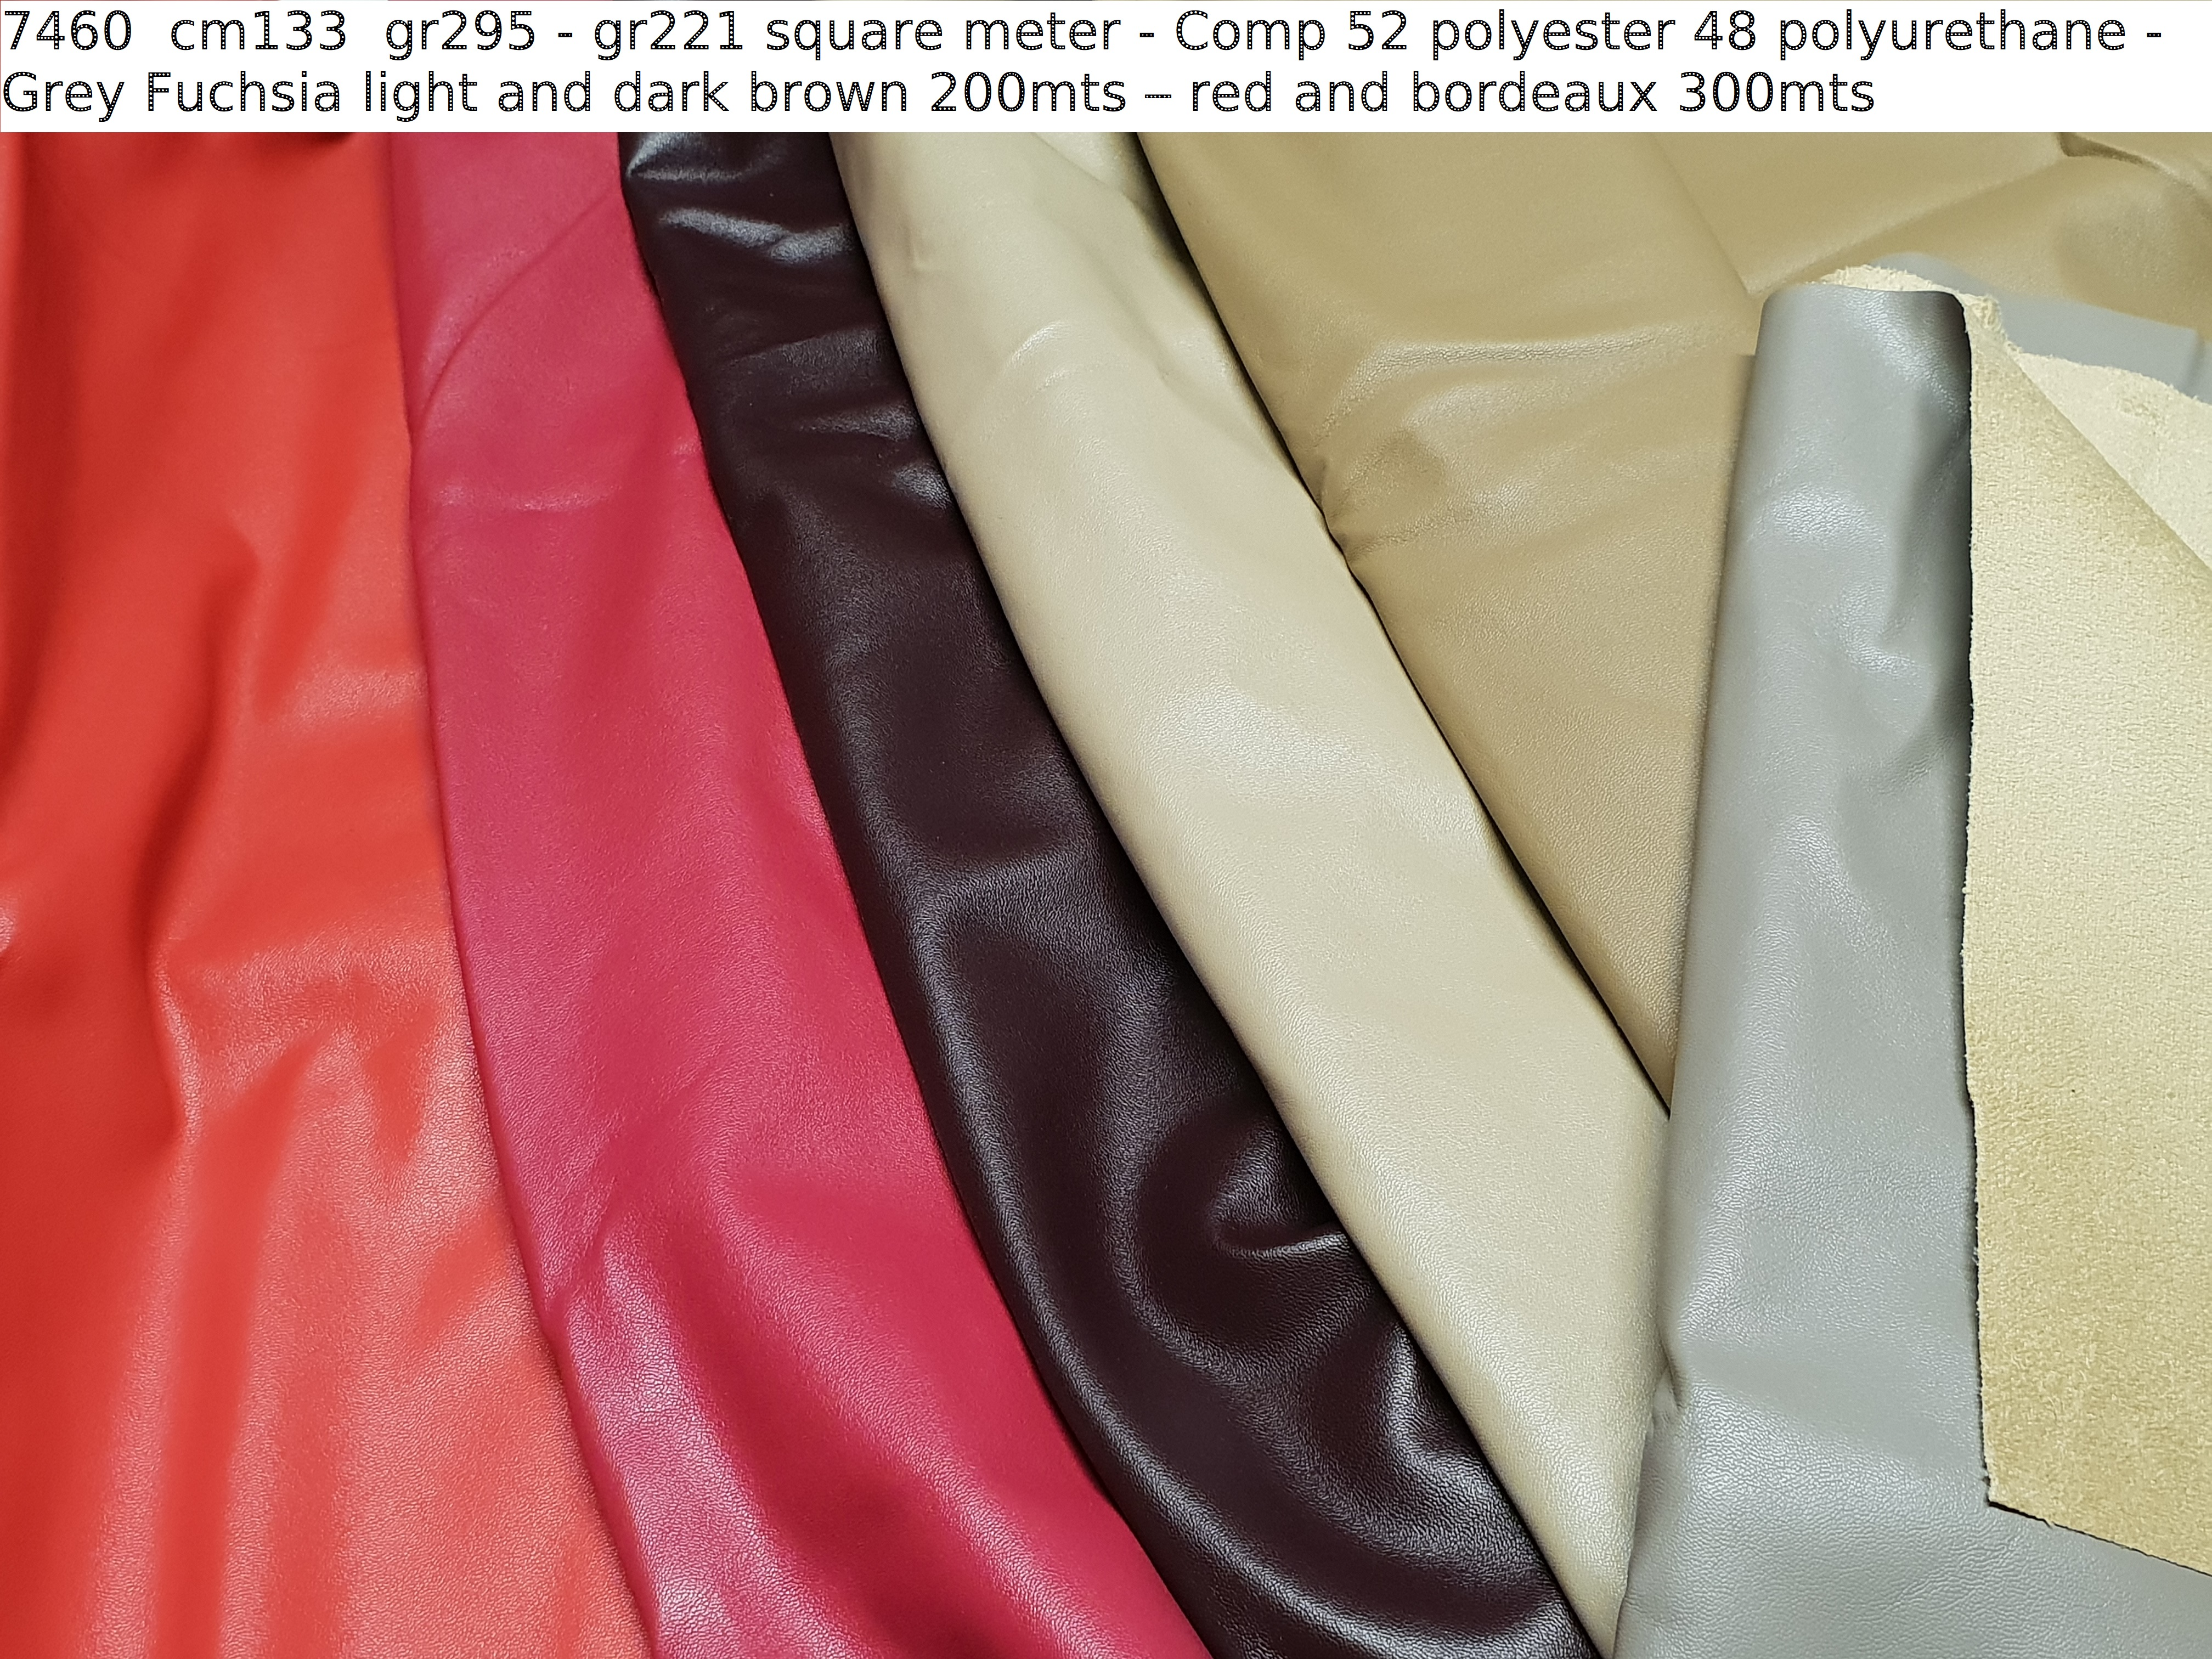 7460 cm133 gr295 - gr221 square meter - Comp 52 polyester 48 polyurethane - Grey Fuchsia light and dark brown 200mts – red and bordeaux 300mts